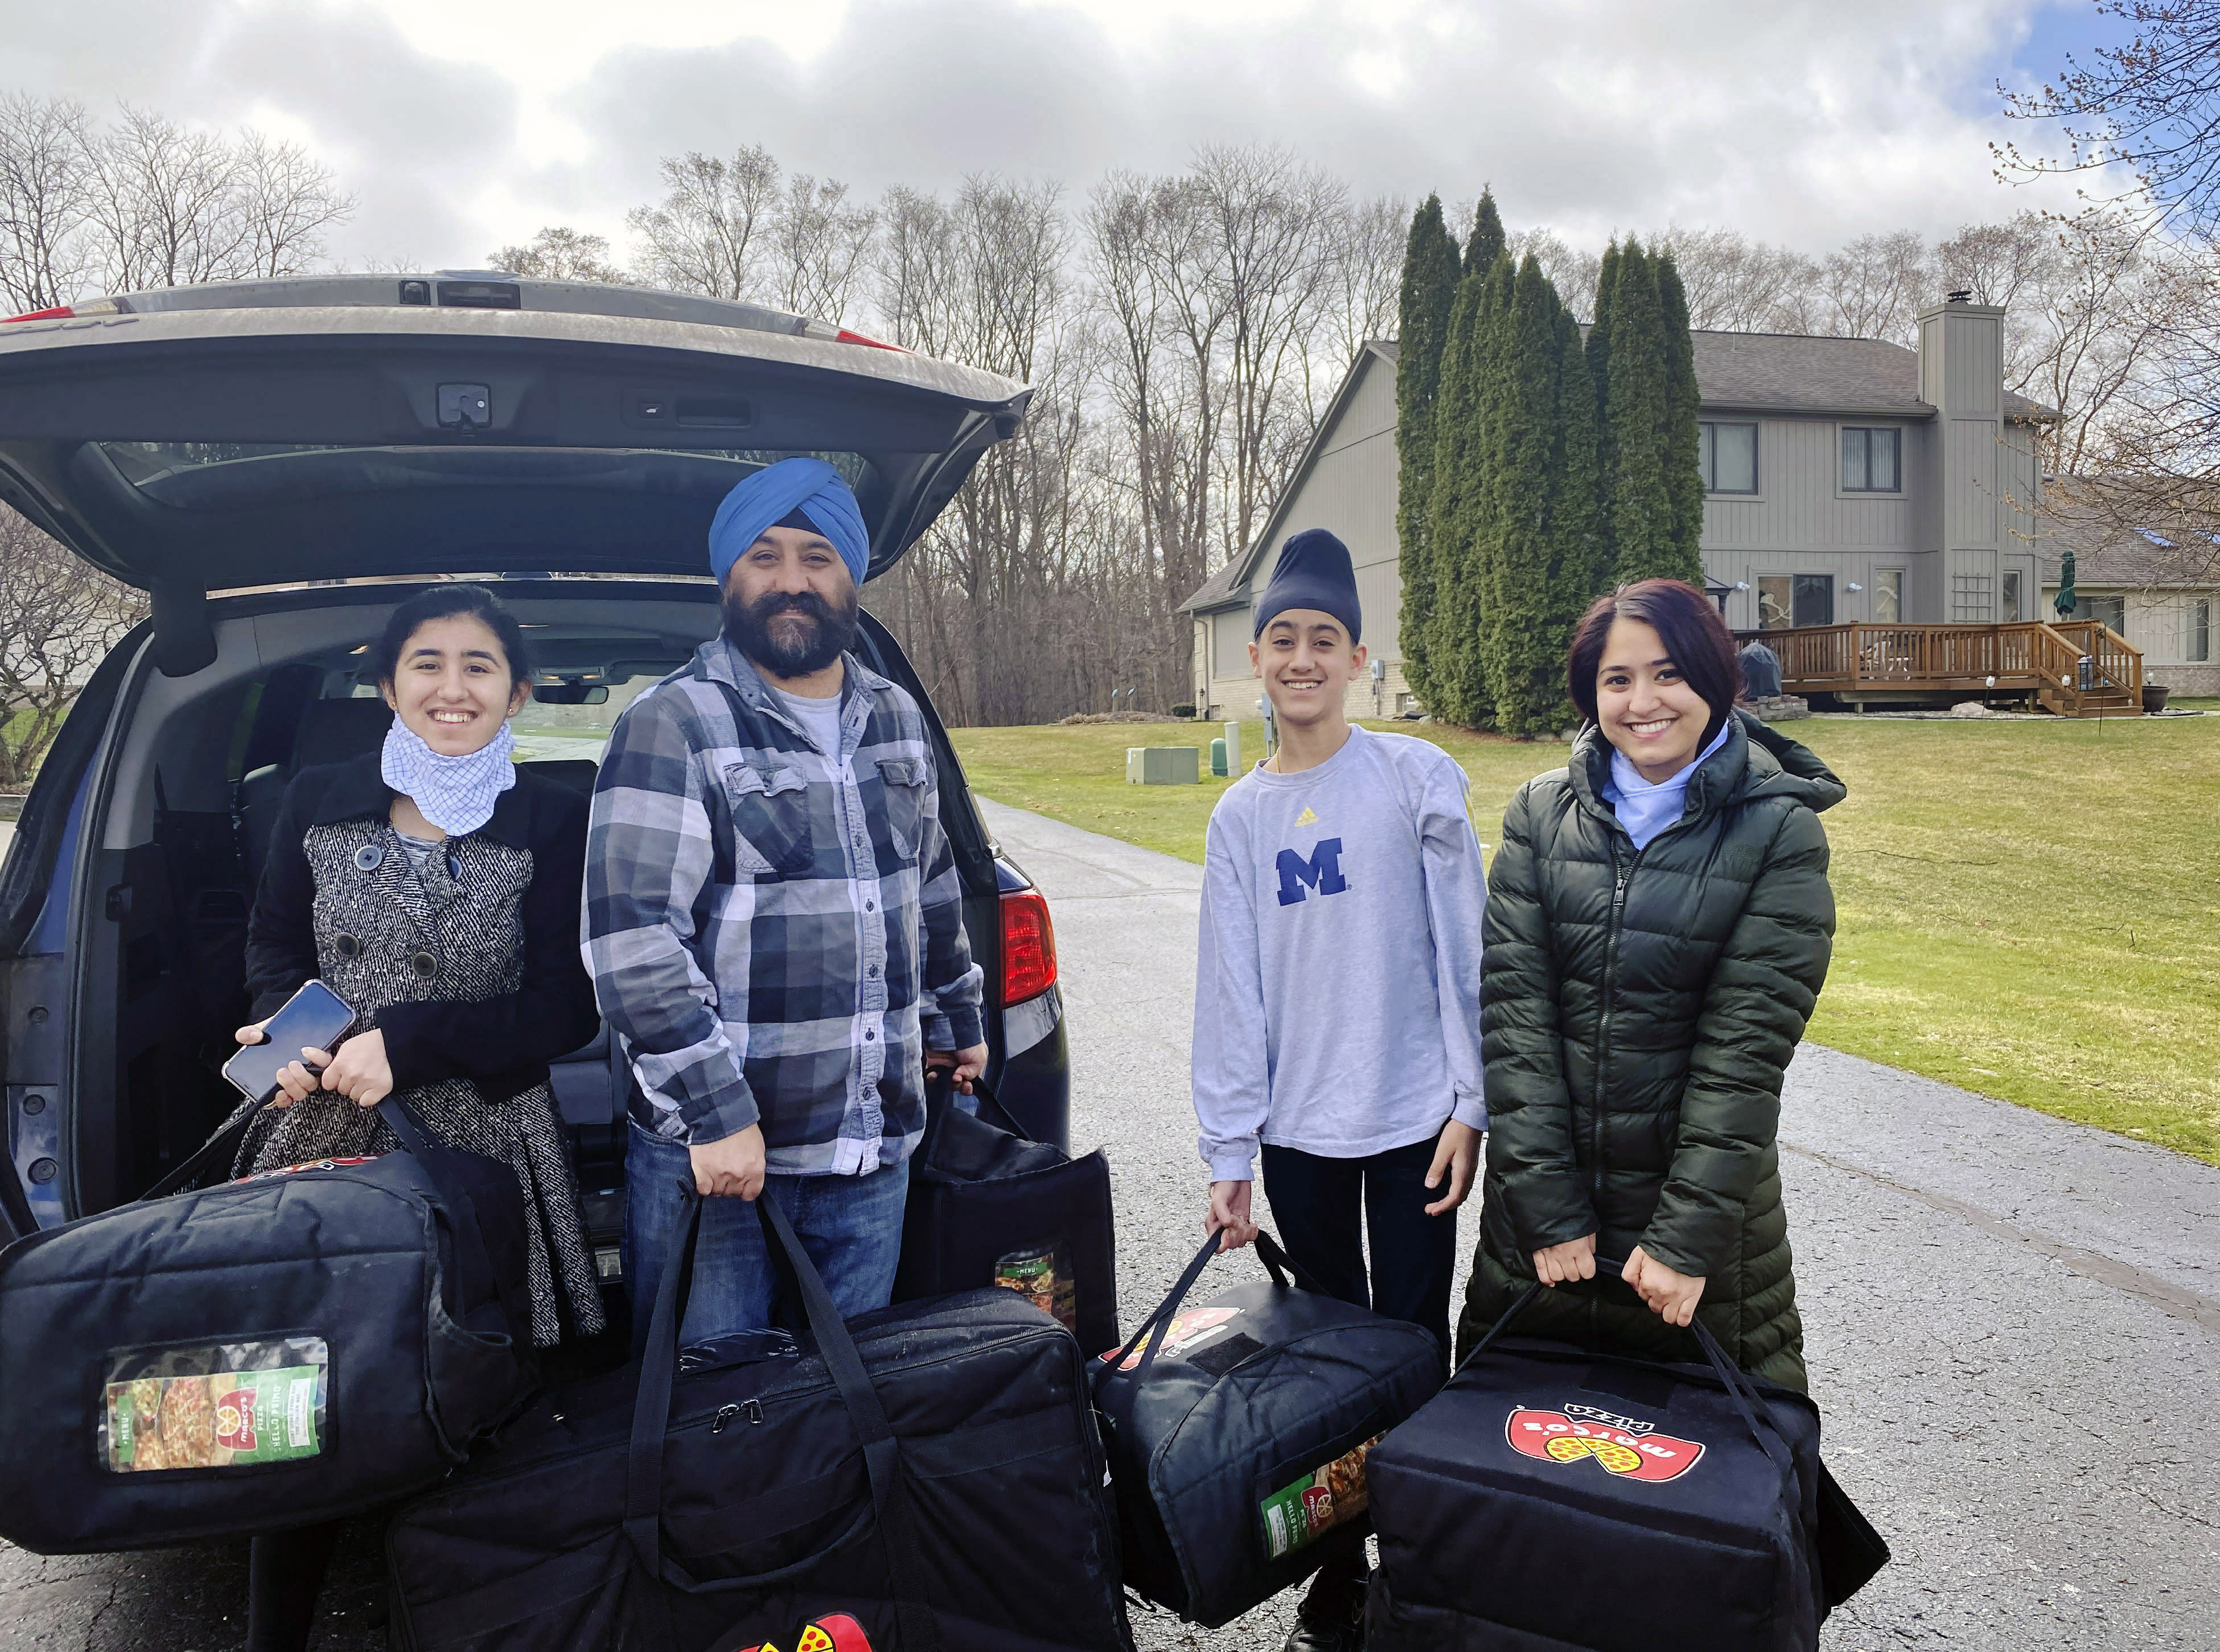 In this April 1, 2020 photo provided by Paramjyoti Kaur Singh, Singh family members Baani, Shalinder, Arjun and Jasveen Kaur pose for a photo before delivering pizzas to health care workers in Detroit. (Paramjyoti Kaur Singh via AP)